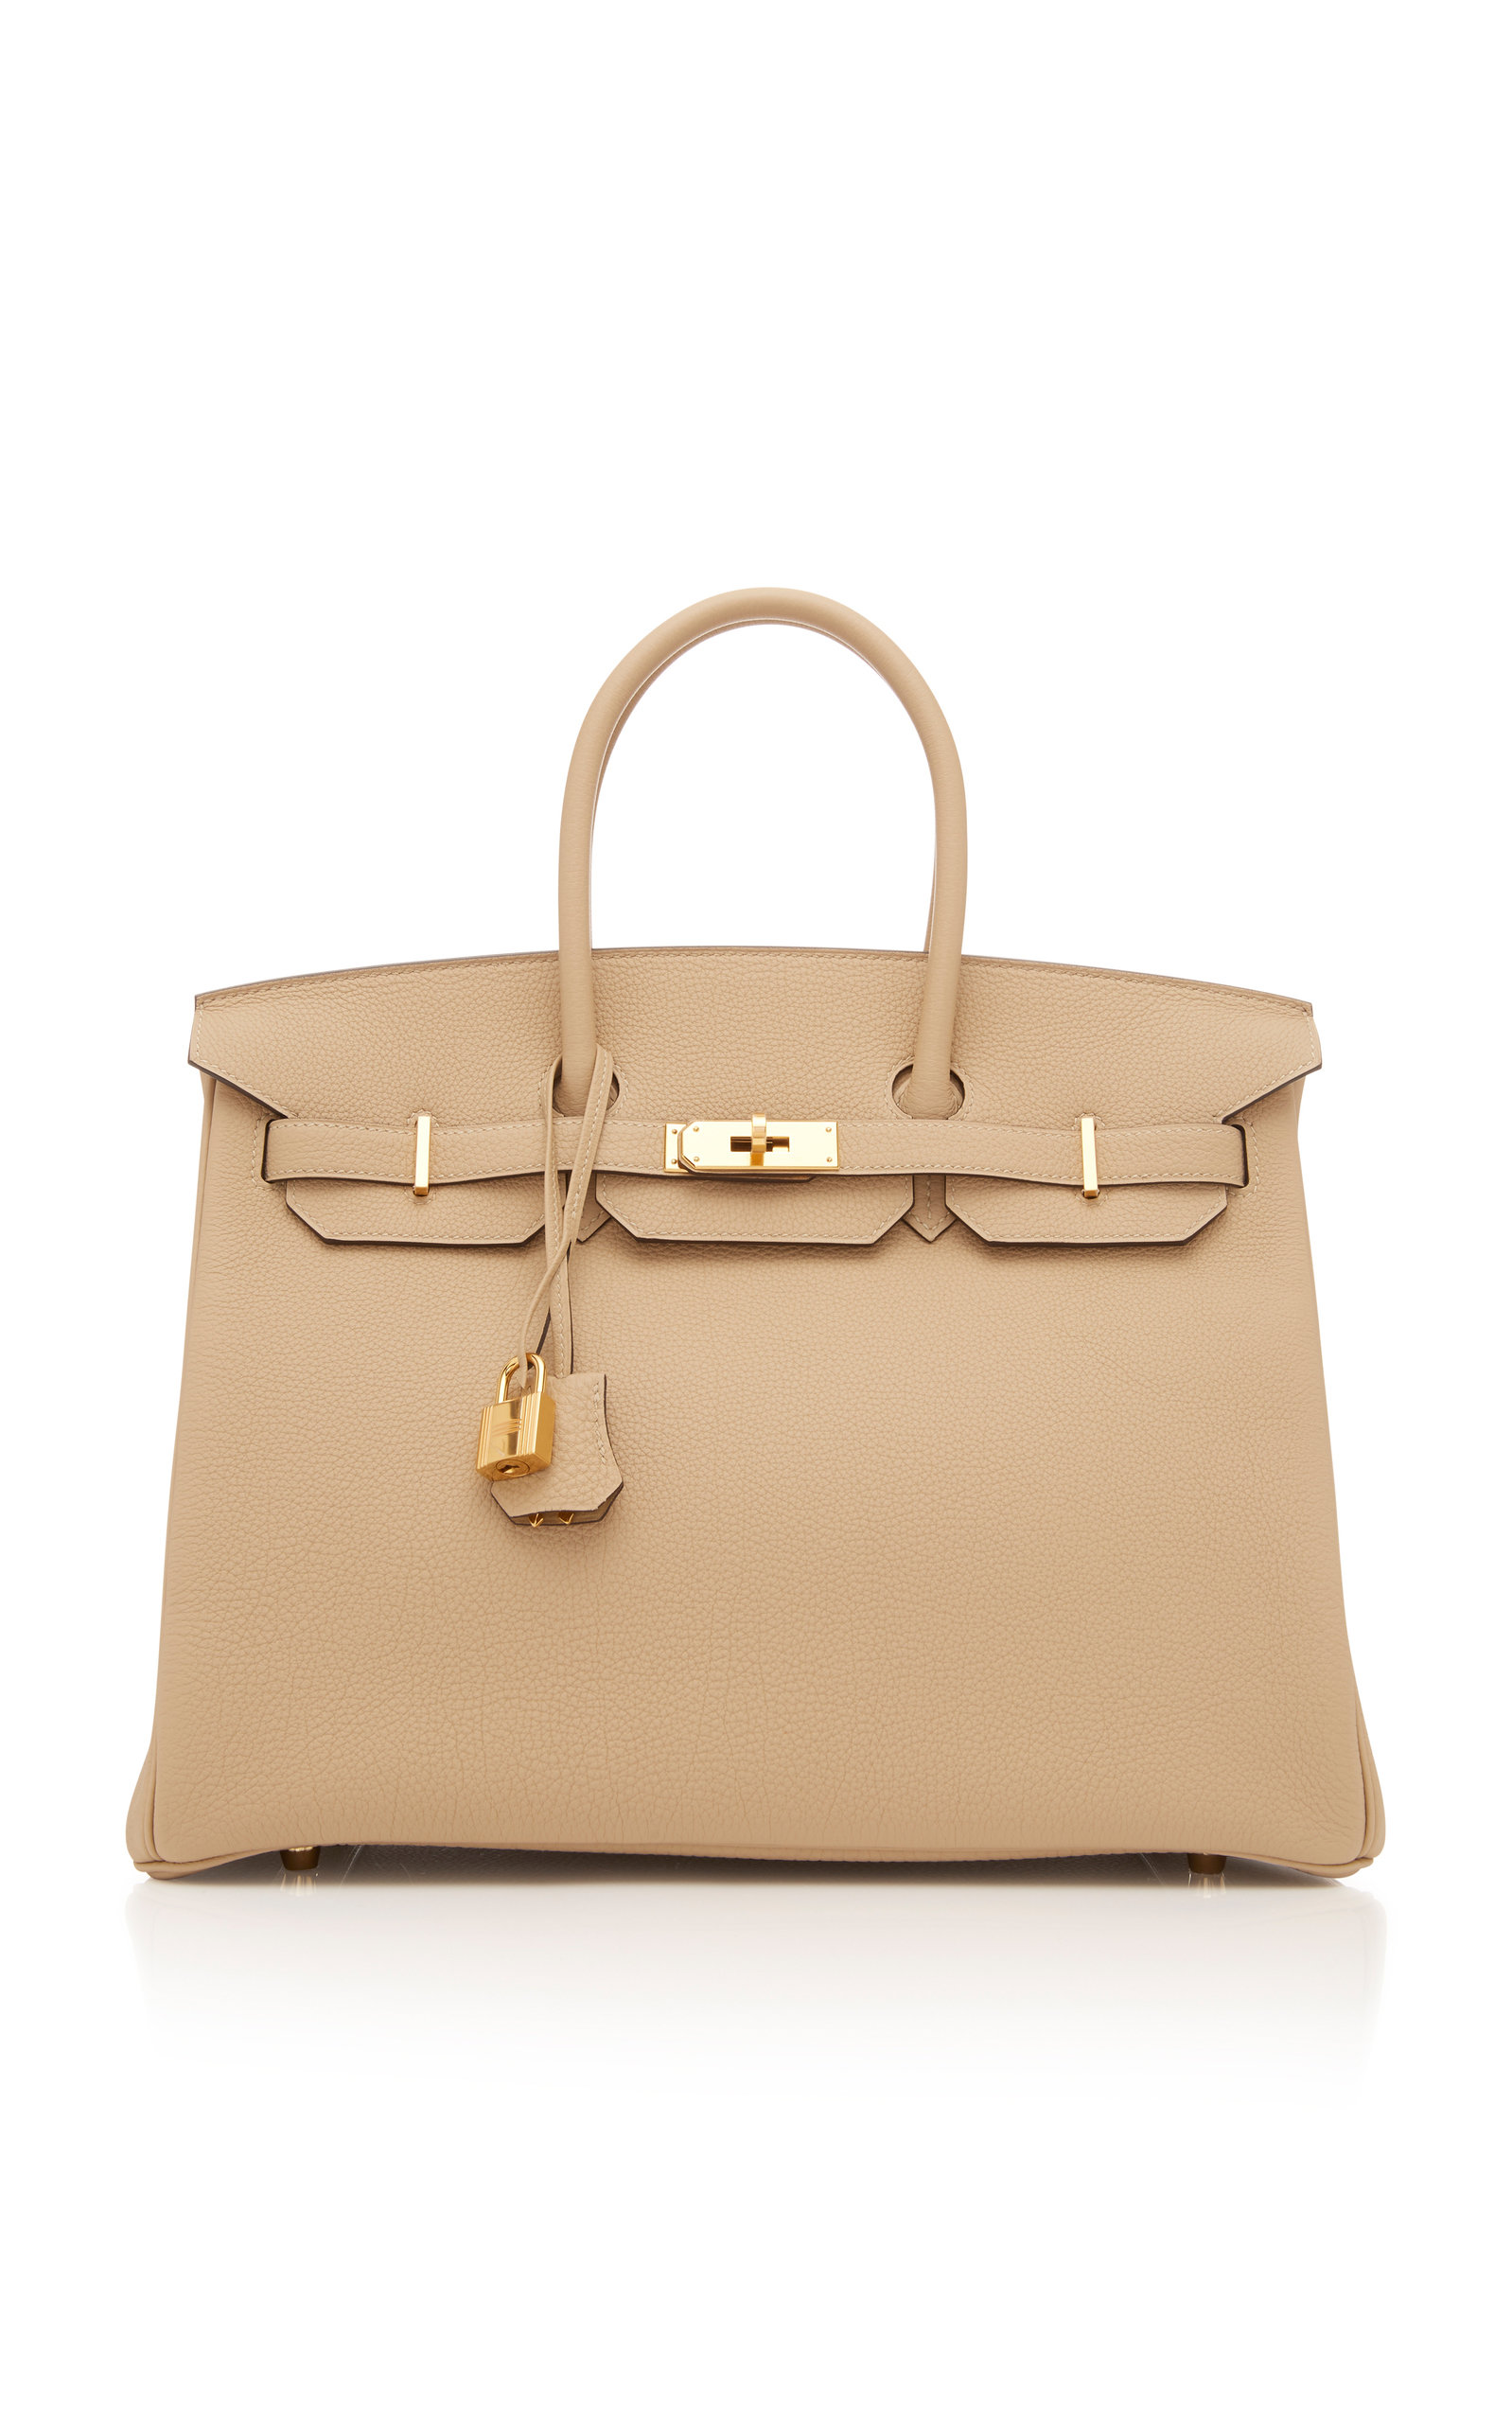 Hermes 35cm Trench Togo Leather Birkin